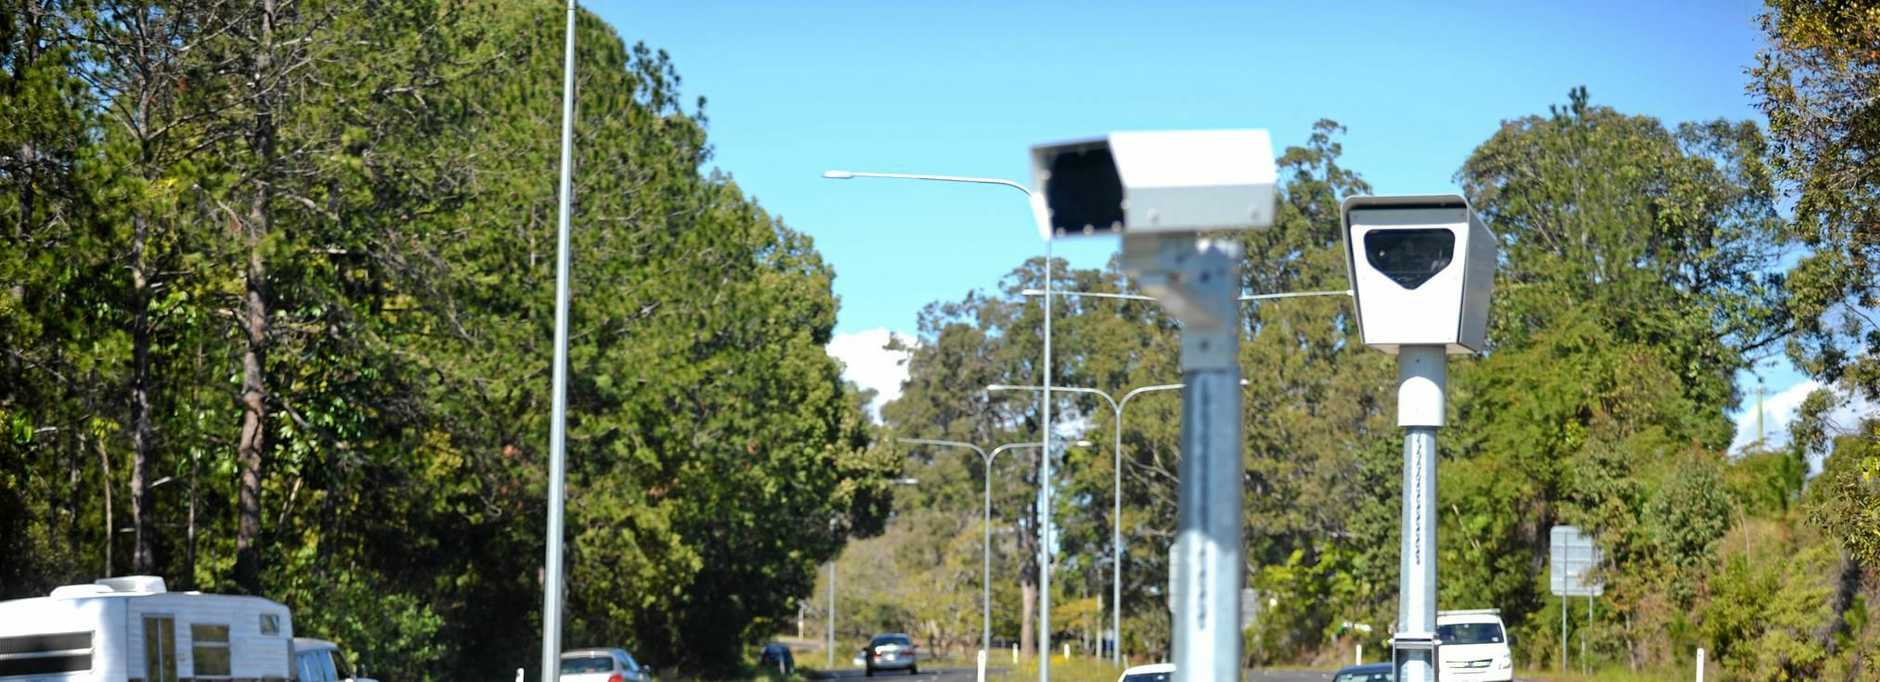 HACKED: Speed cameras also run the risk of hacking.